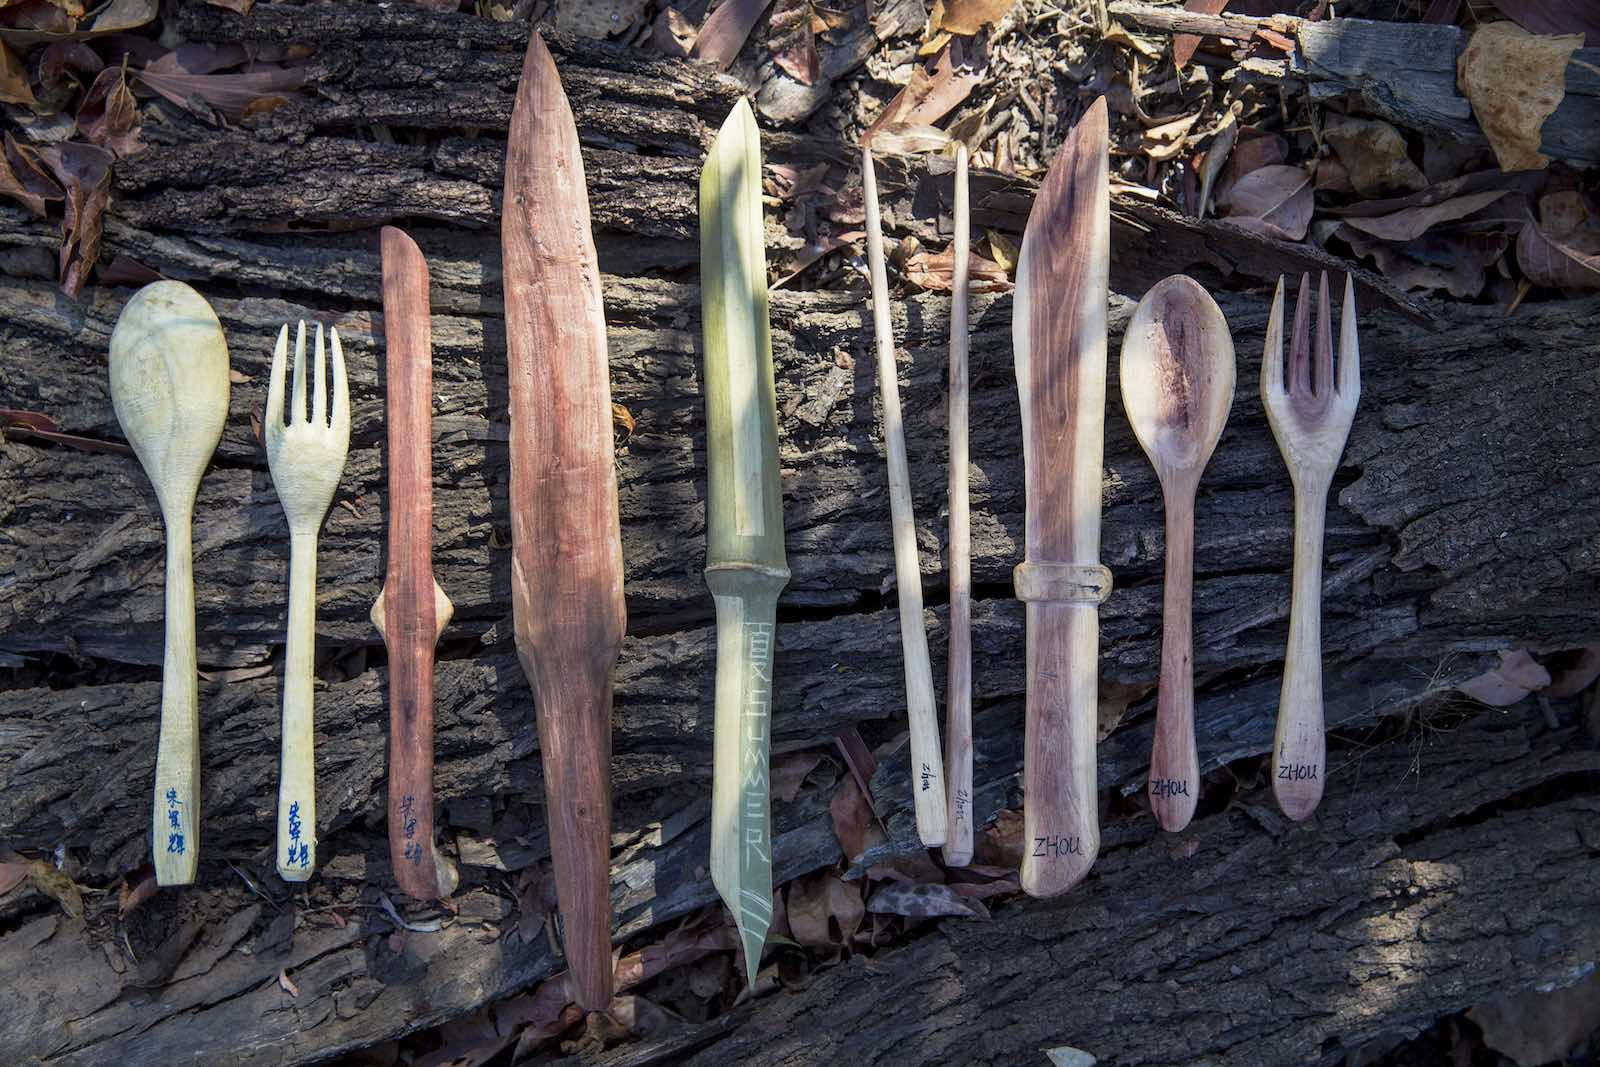 Eating utensils hand carved by Australian Army, US Army, US Marine Corps and Chinese People's Liberation Army troops during joint training Exercise Kowari 2016 in the Northern Territory (Photo: Defence Department)